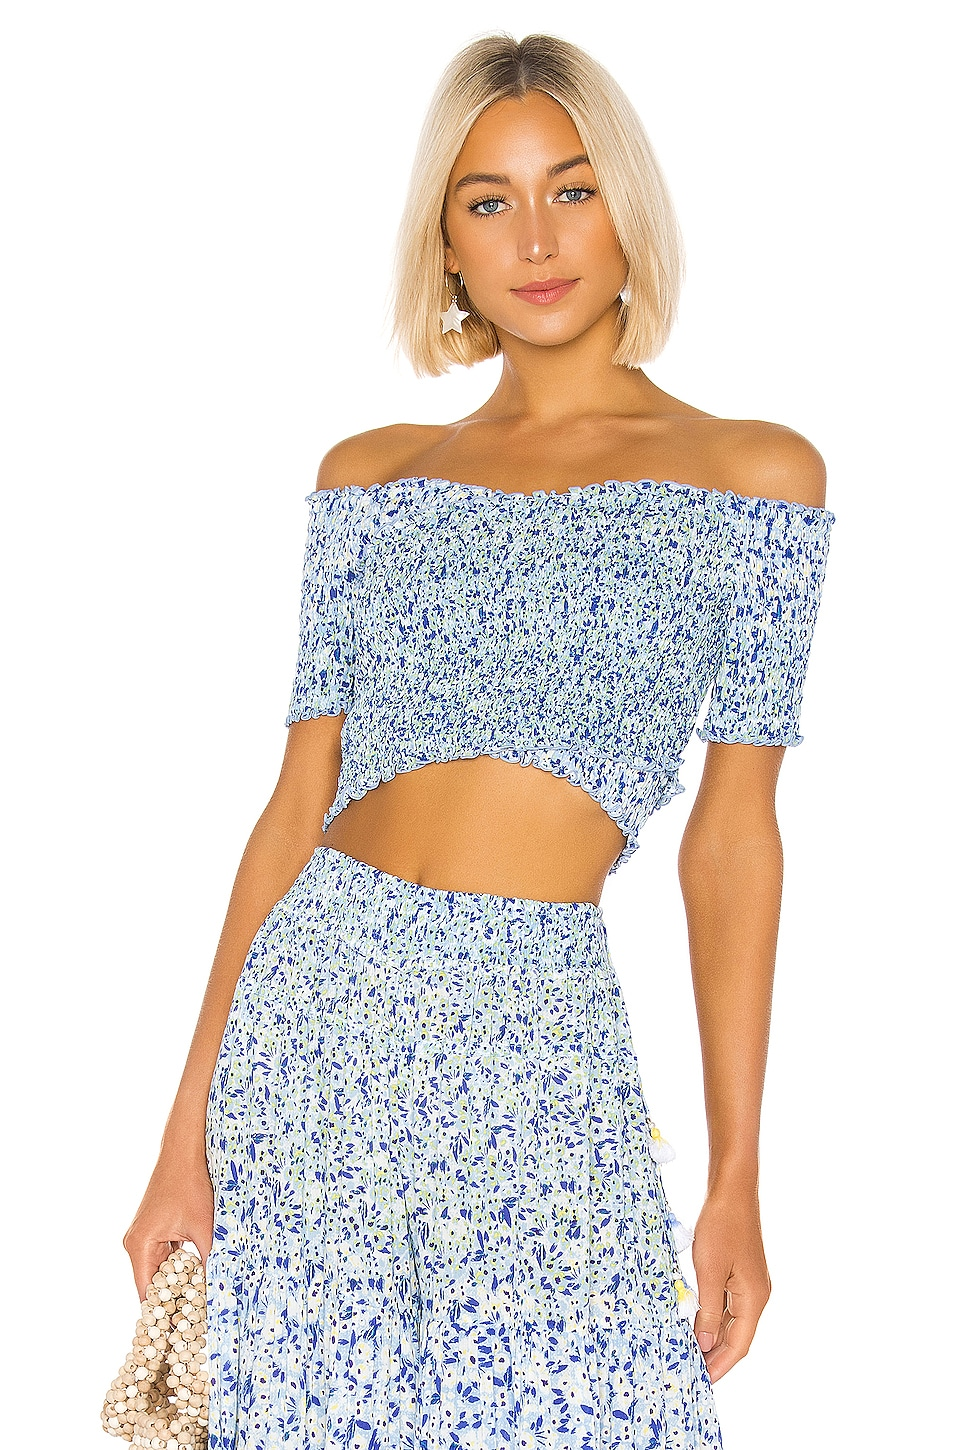 Poupette St Barth Soledad Blouse in Blue Icy Liberty